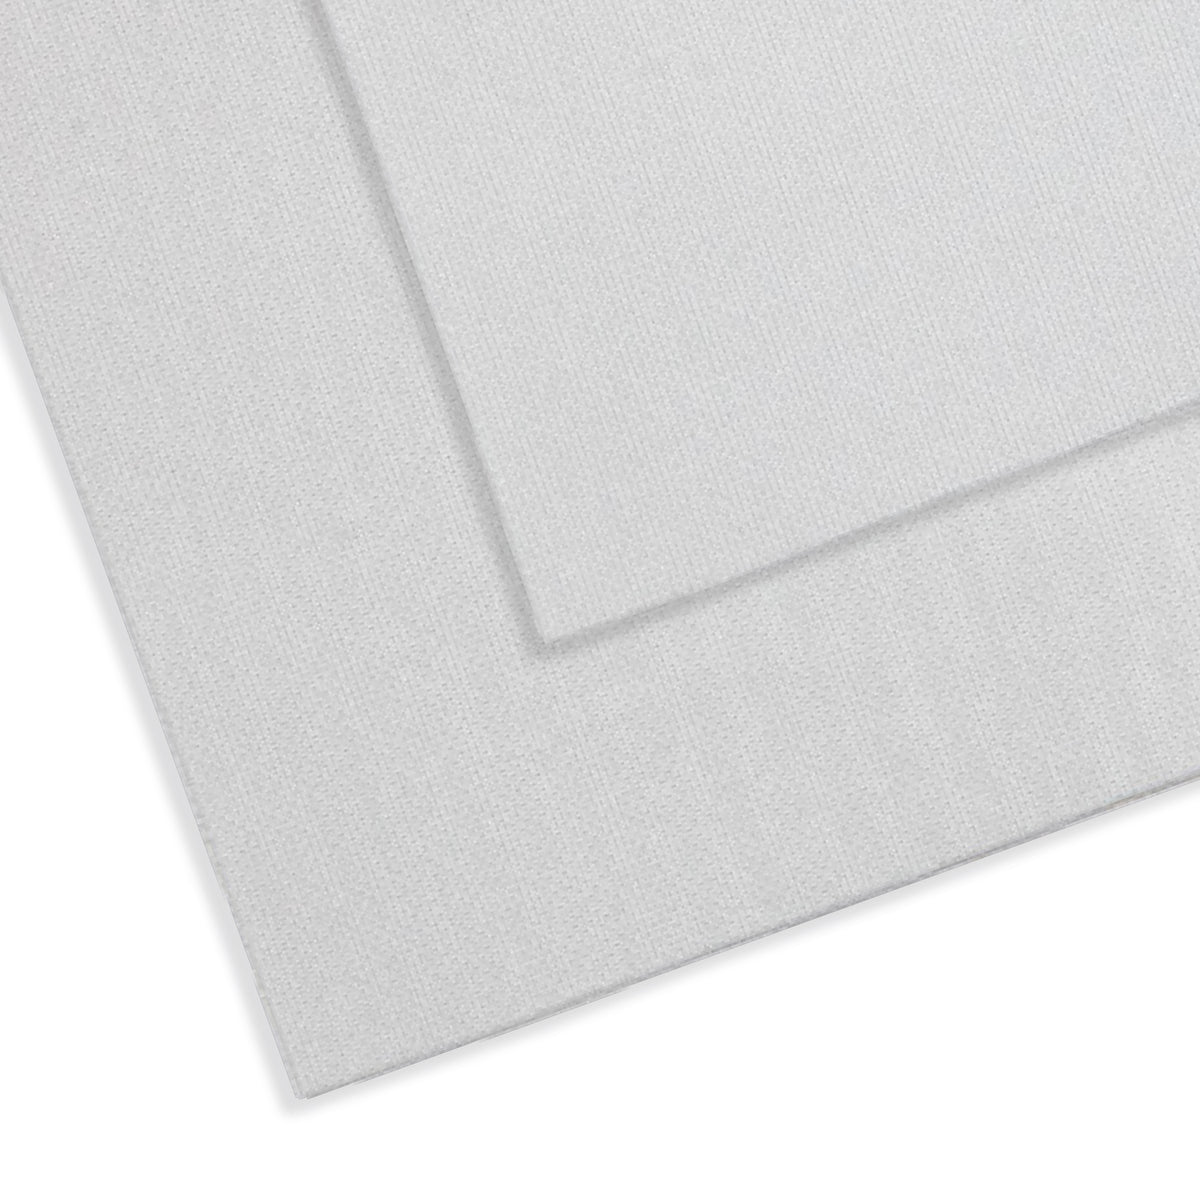 Reinraum-Tuch FG Purity Wipe 7225 | Polyester, ISO 4, 30 x 30 cm